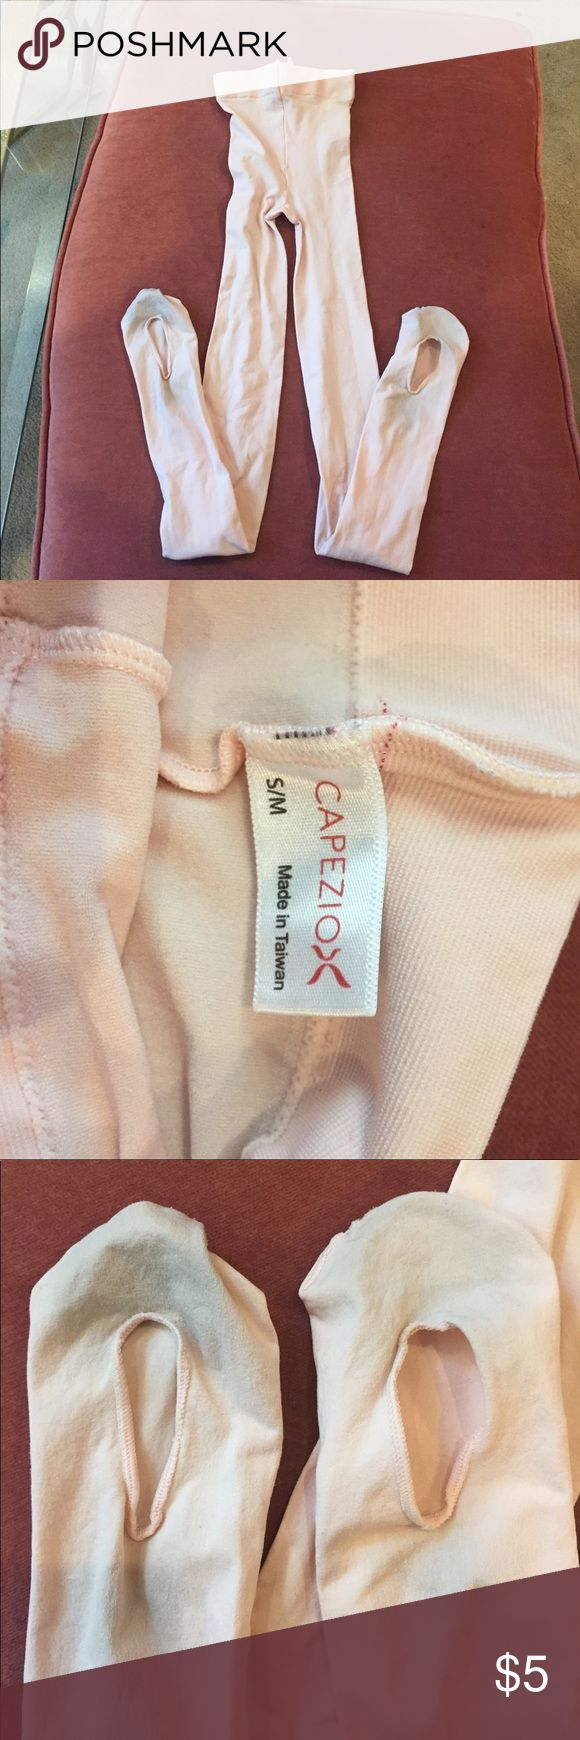 Convertible Ballet tights size S/M Convertible light pink Ballet tights size S/M. Worn maybe 10 times for an hour each time. Leotard sold separately Capezio Other